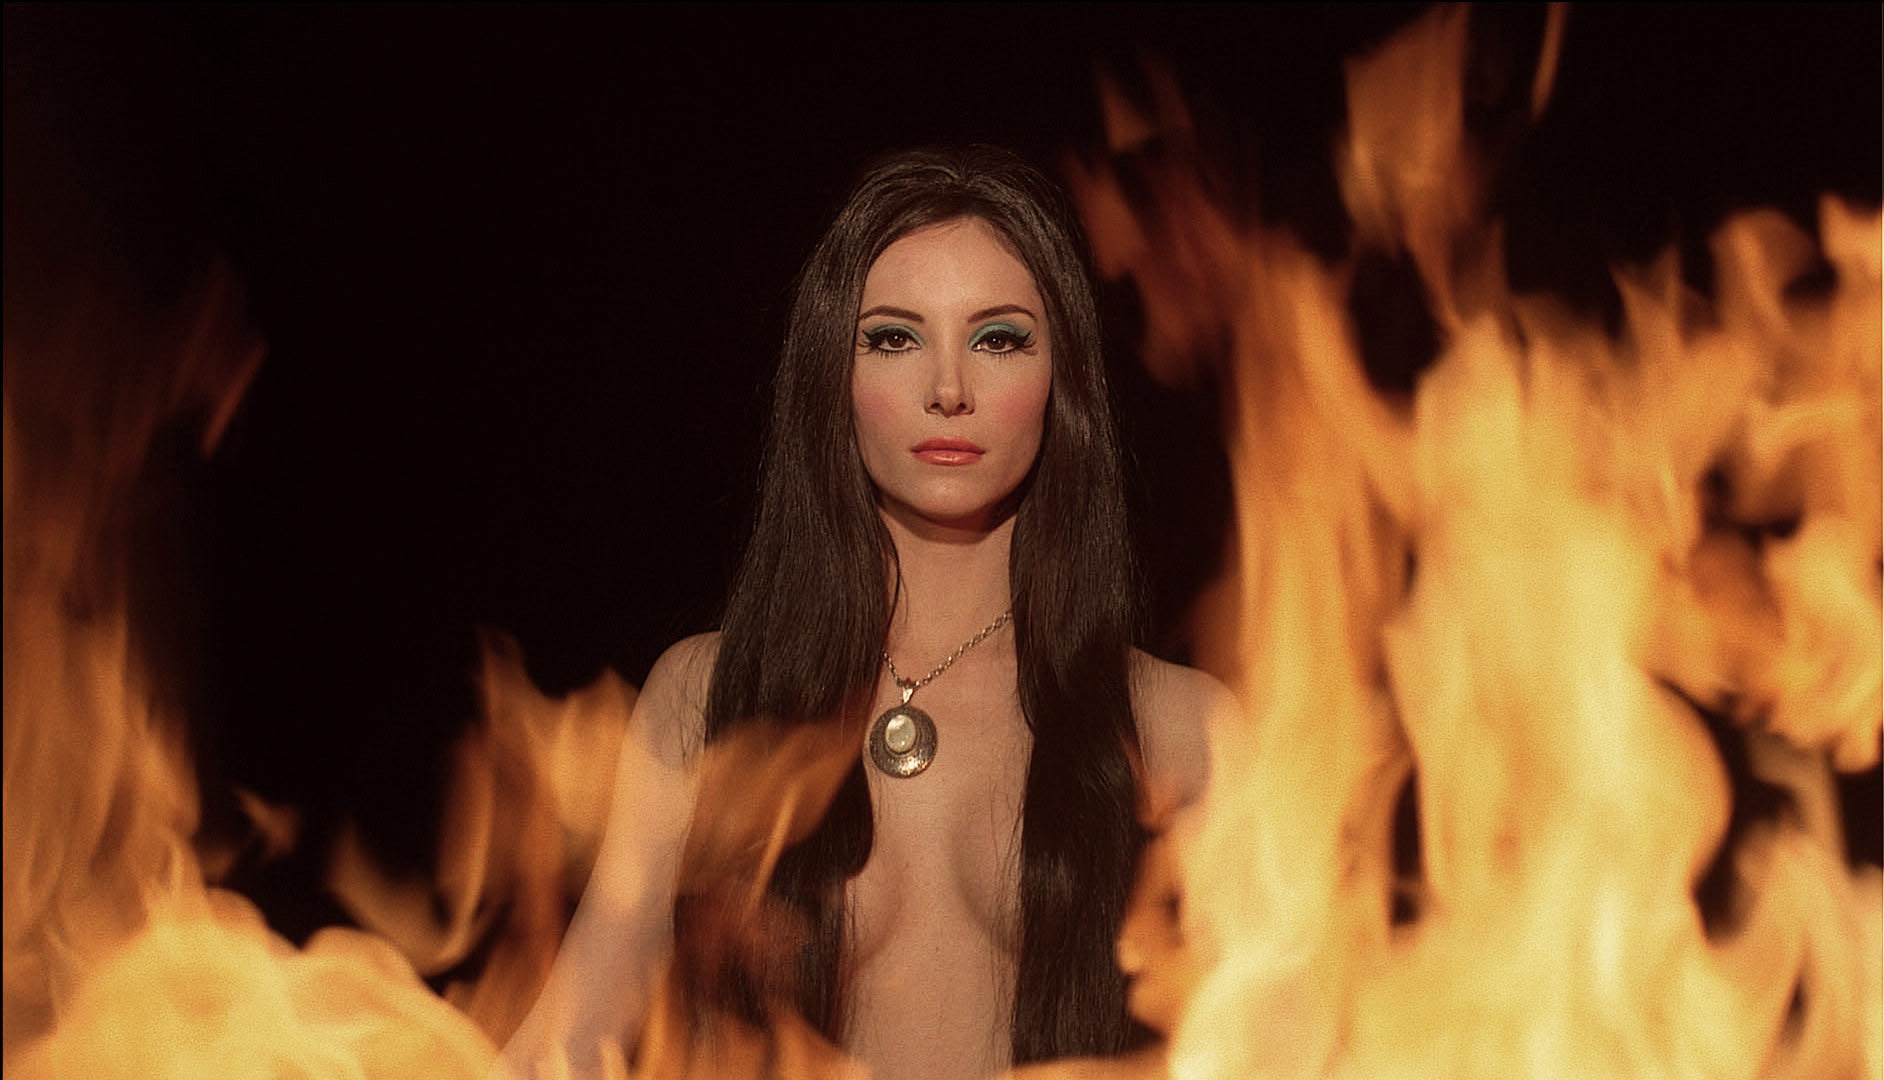 Elaine (actress Samantha Robinson) appears in a seductive fantasy sequence from The Love Witch.